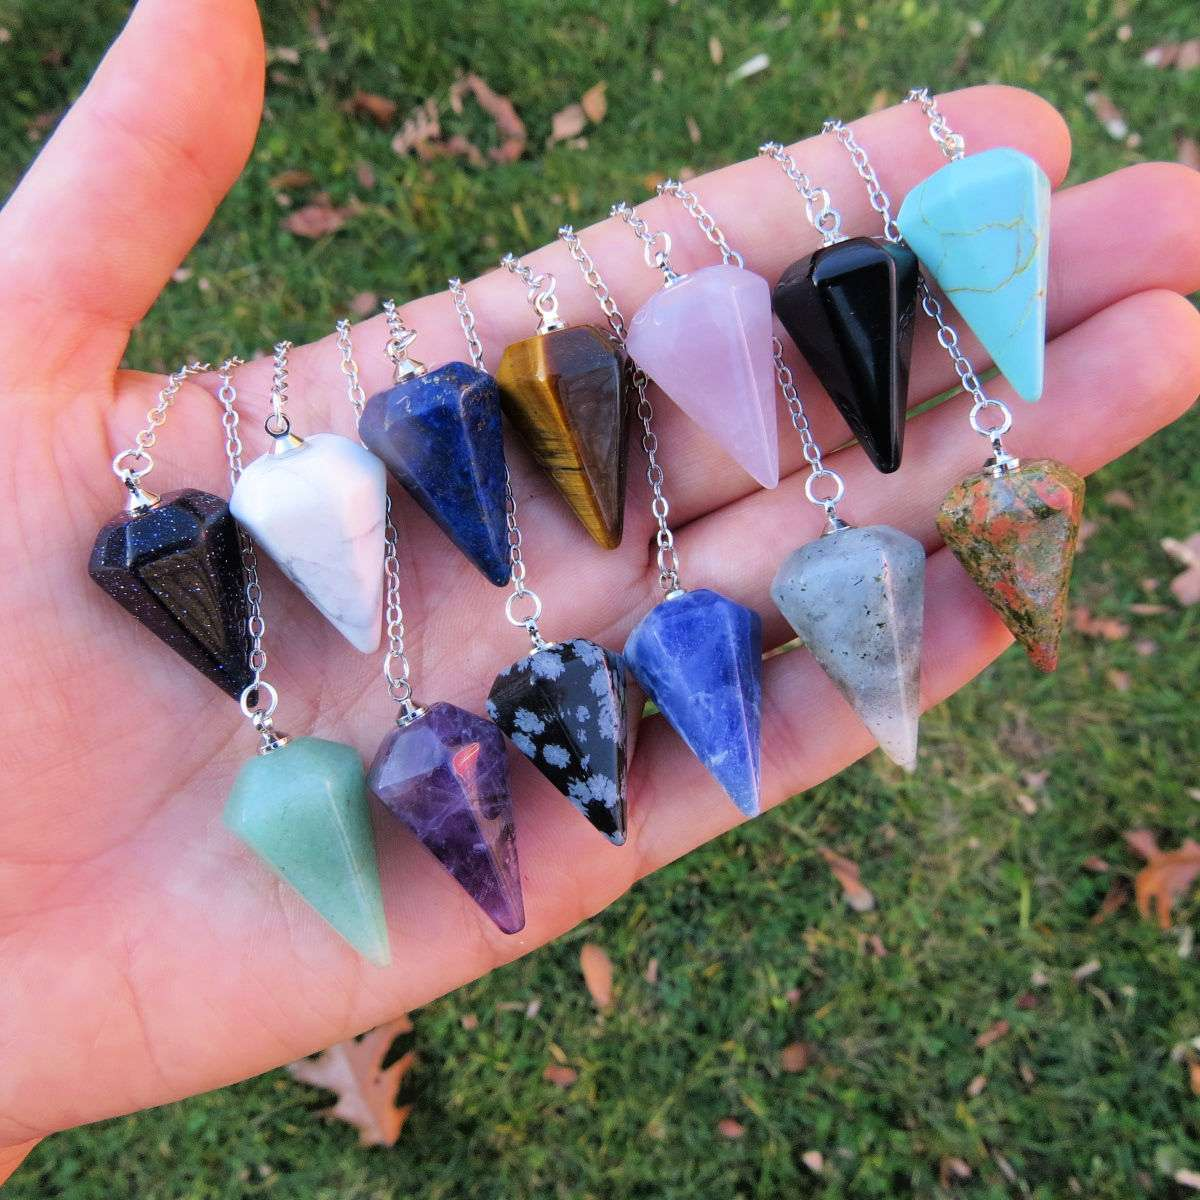 Crystal Pendulums for Divination - Small Stone Pendulum